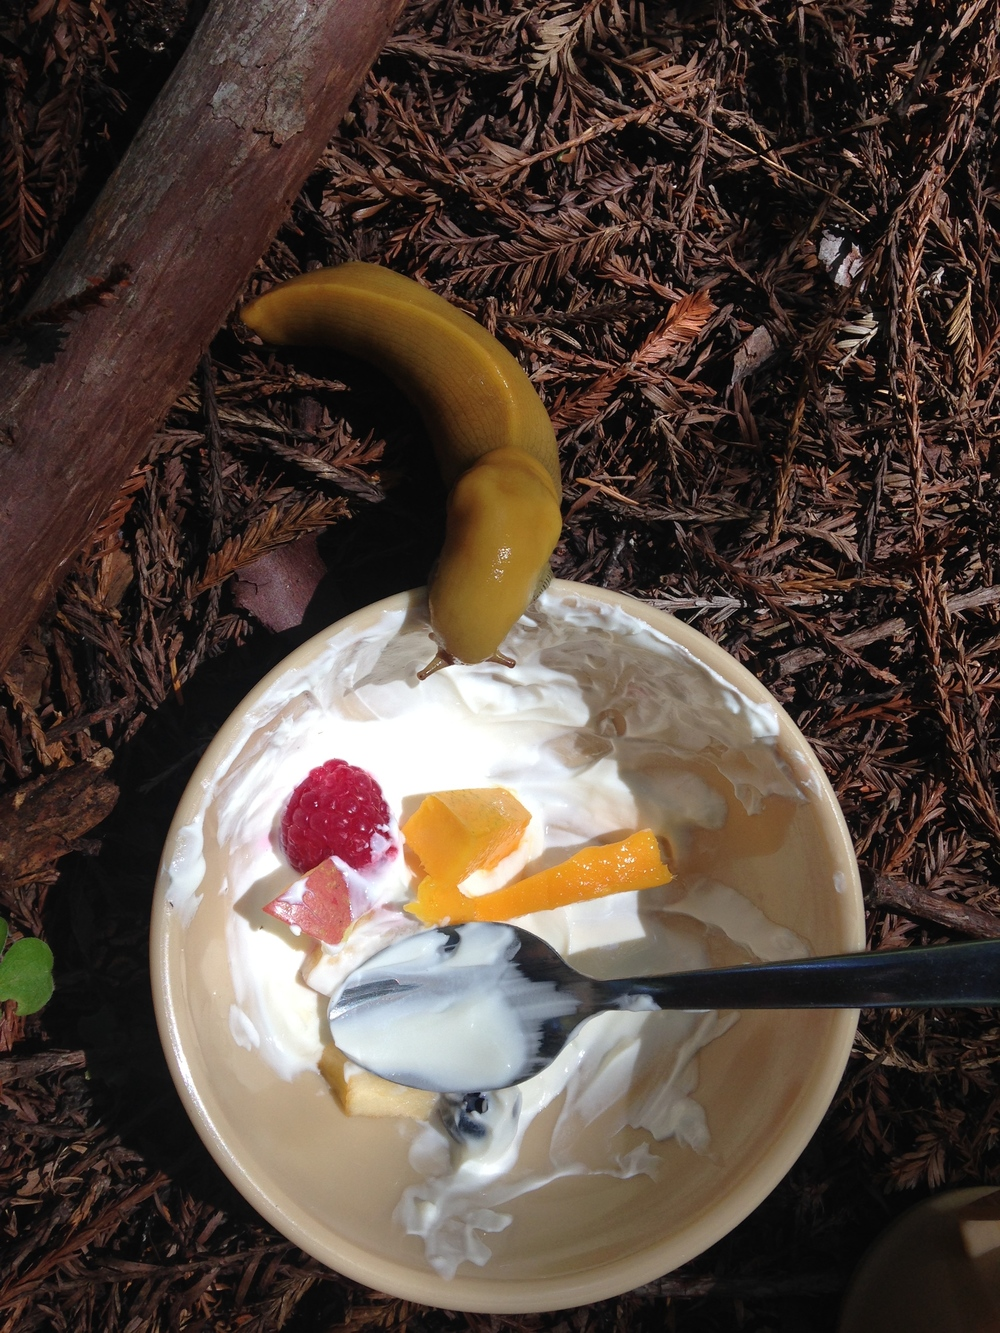 bananna slug breakfast.jpg